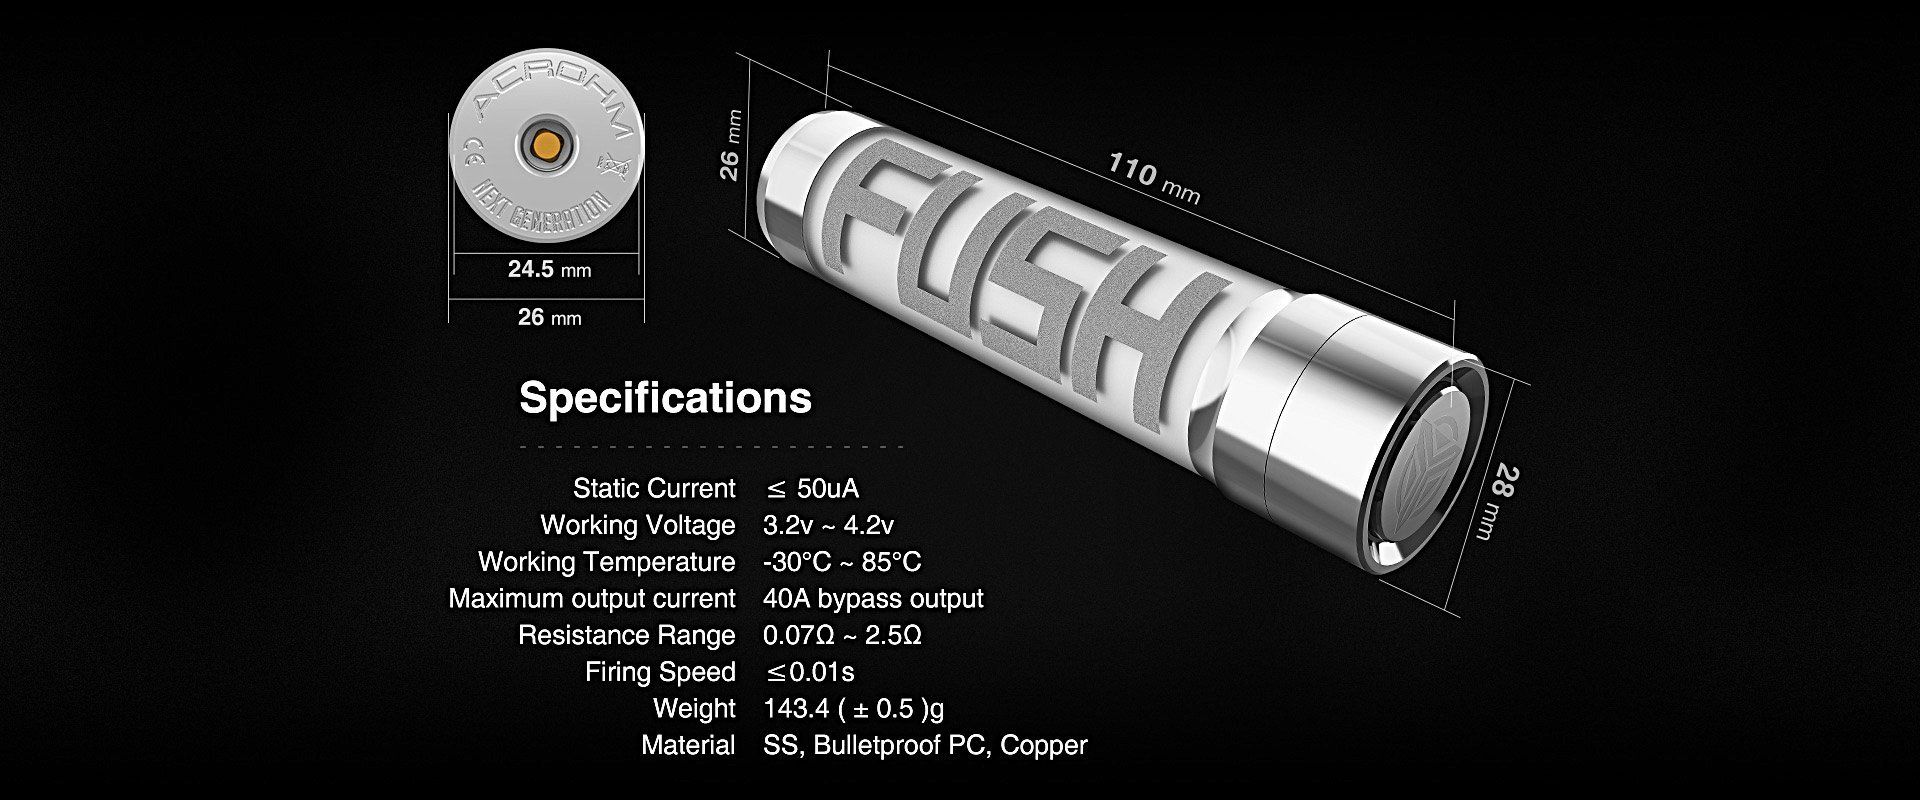 acrohm-fush-semi-mechanical-mod-specifications-components-voltage-output-current-resistance-range-weight-materials-temperature